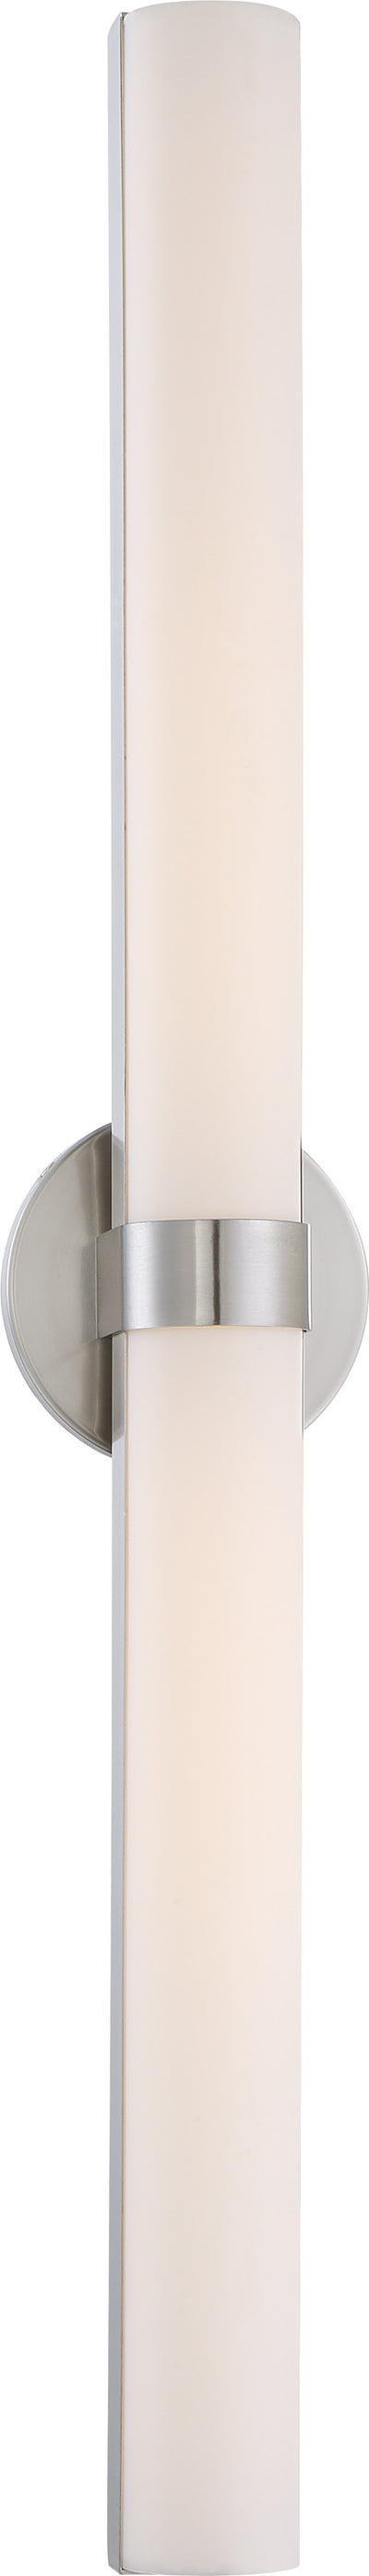 Nuvo Lighting 62/734 Bond Double 37 3/8 Inch LED Vanity with White Acrylic Lens